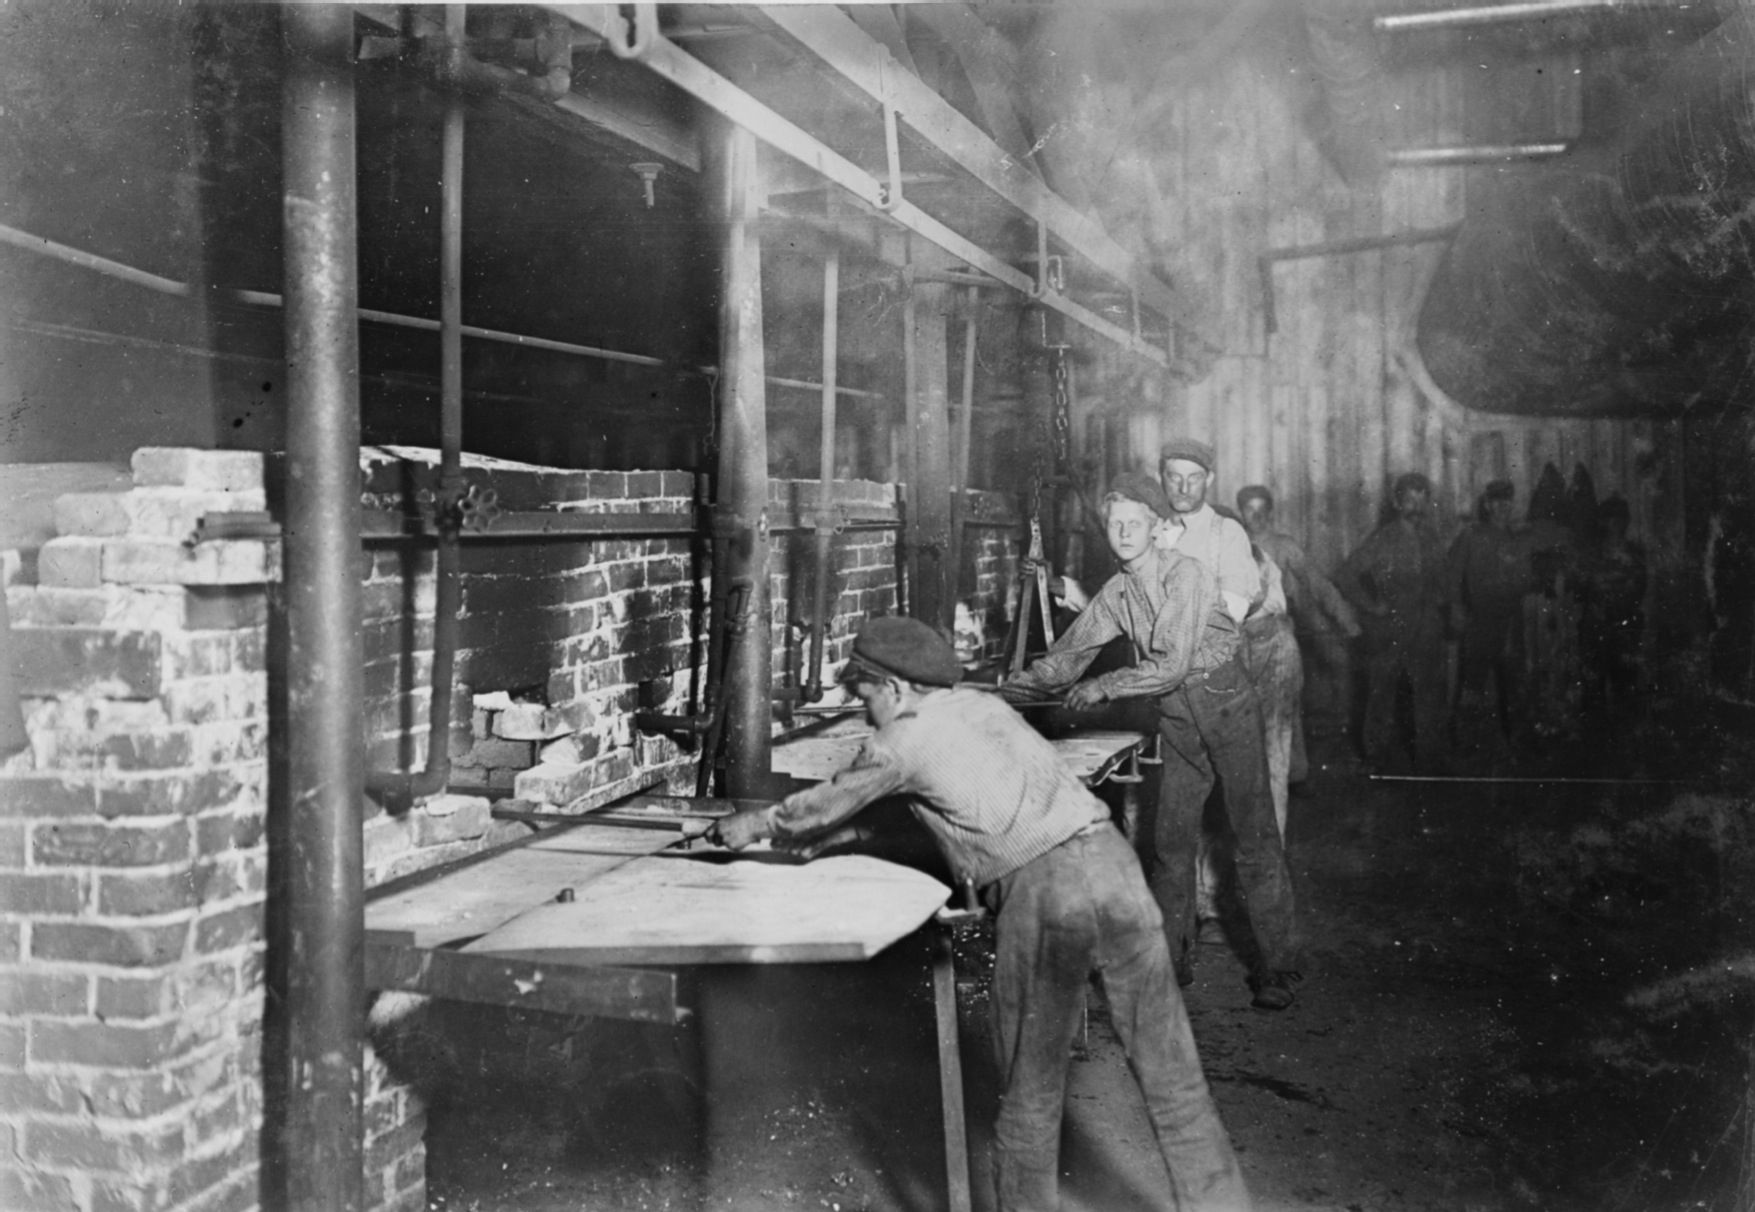 CHILD LABOR Late night shift at the glass factory. The